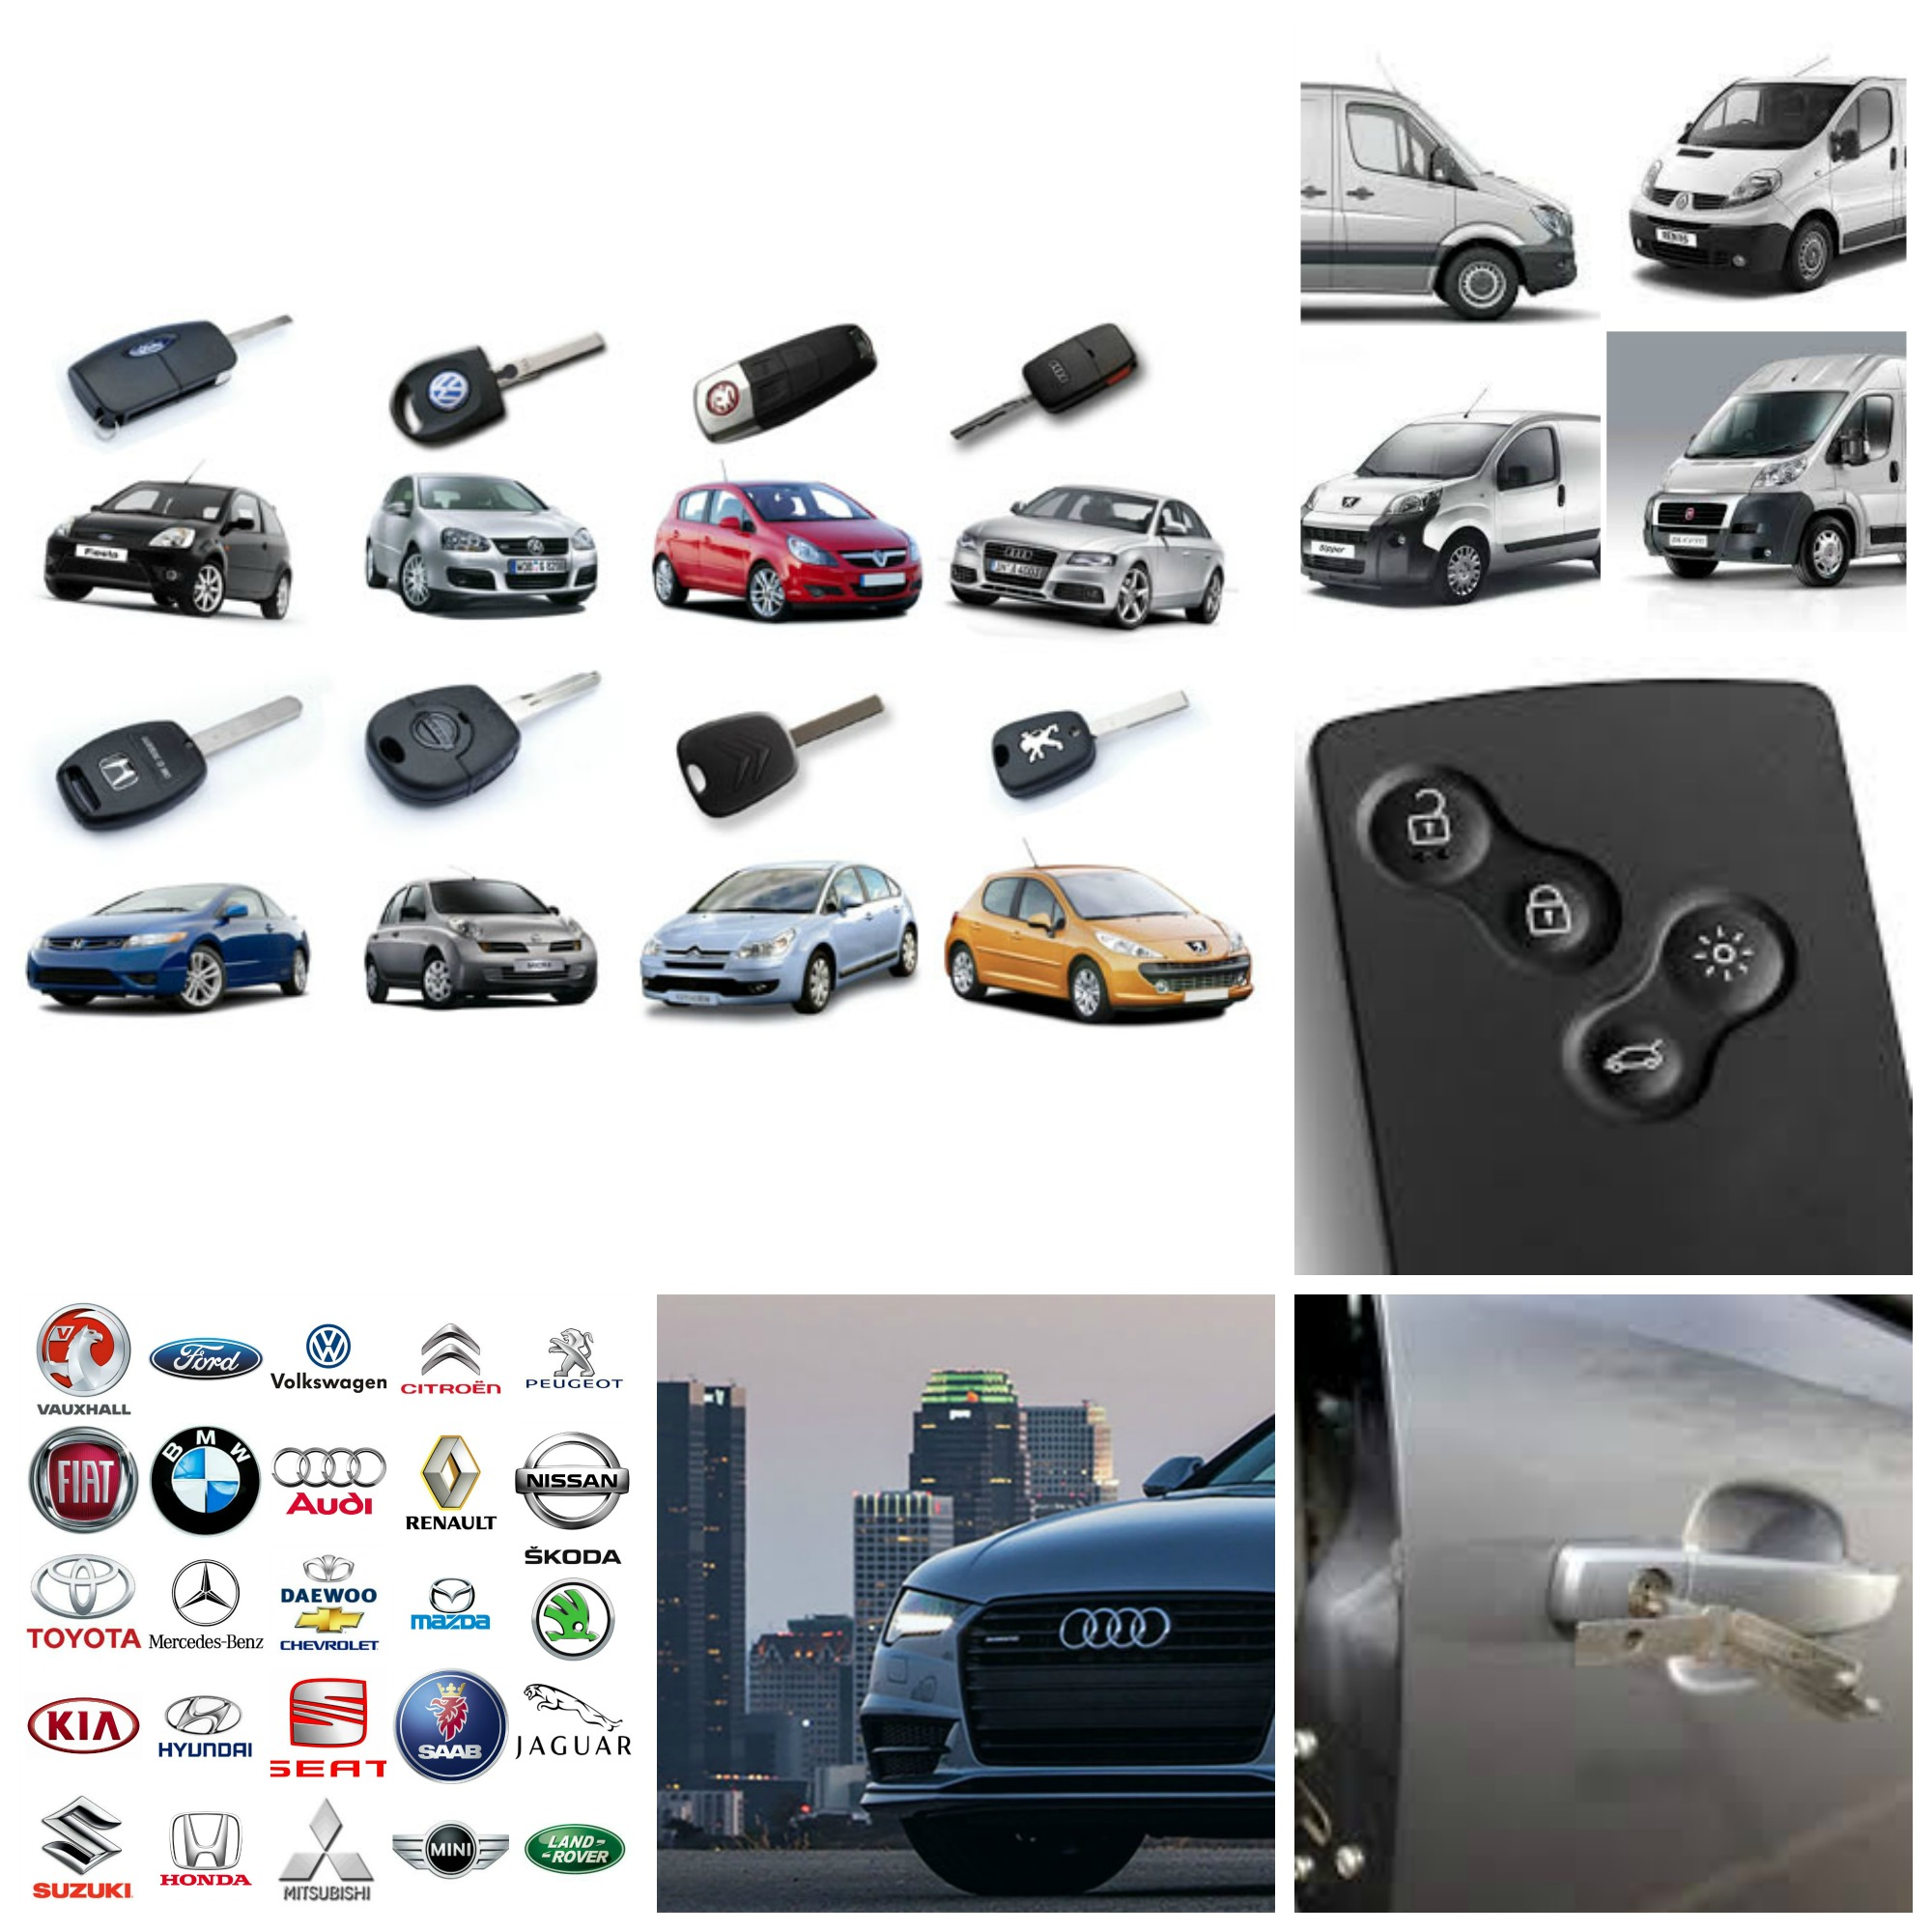 Lost Car Keys Auto Locksmiths Replacement Car Van Keys